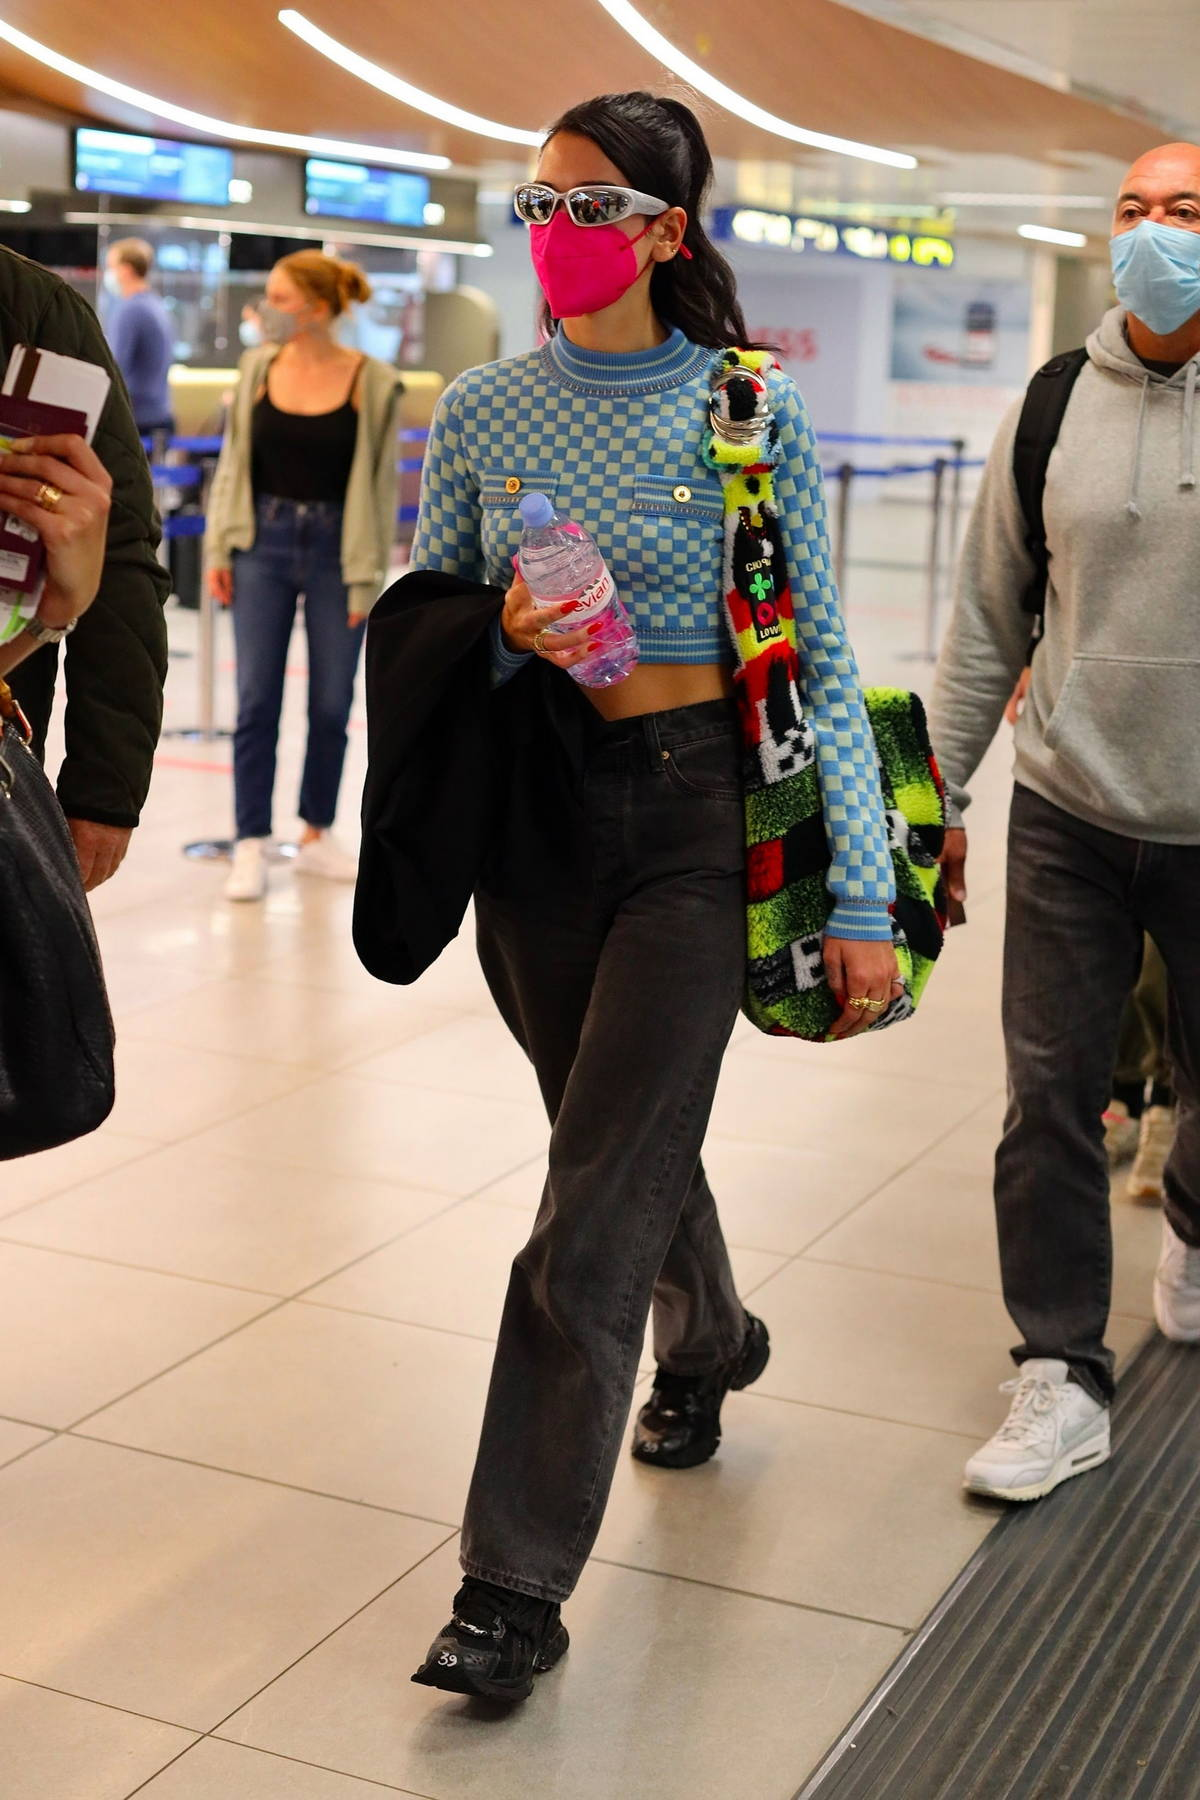 Dua Lipa looks trendy in a checkered crop top as she arrives at the airport in Milan, Italy